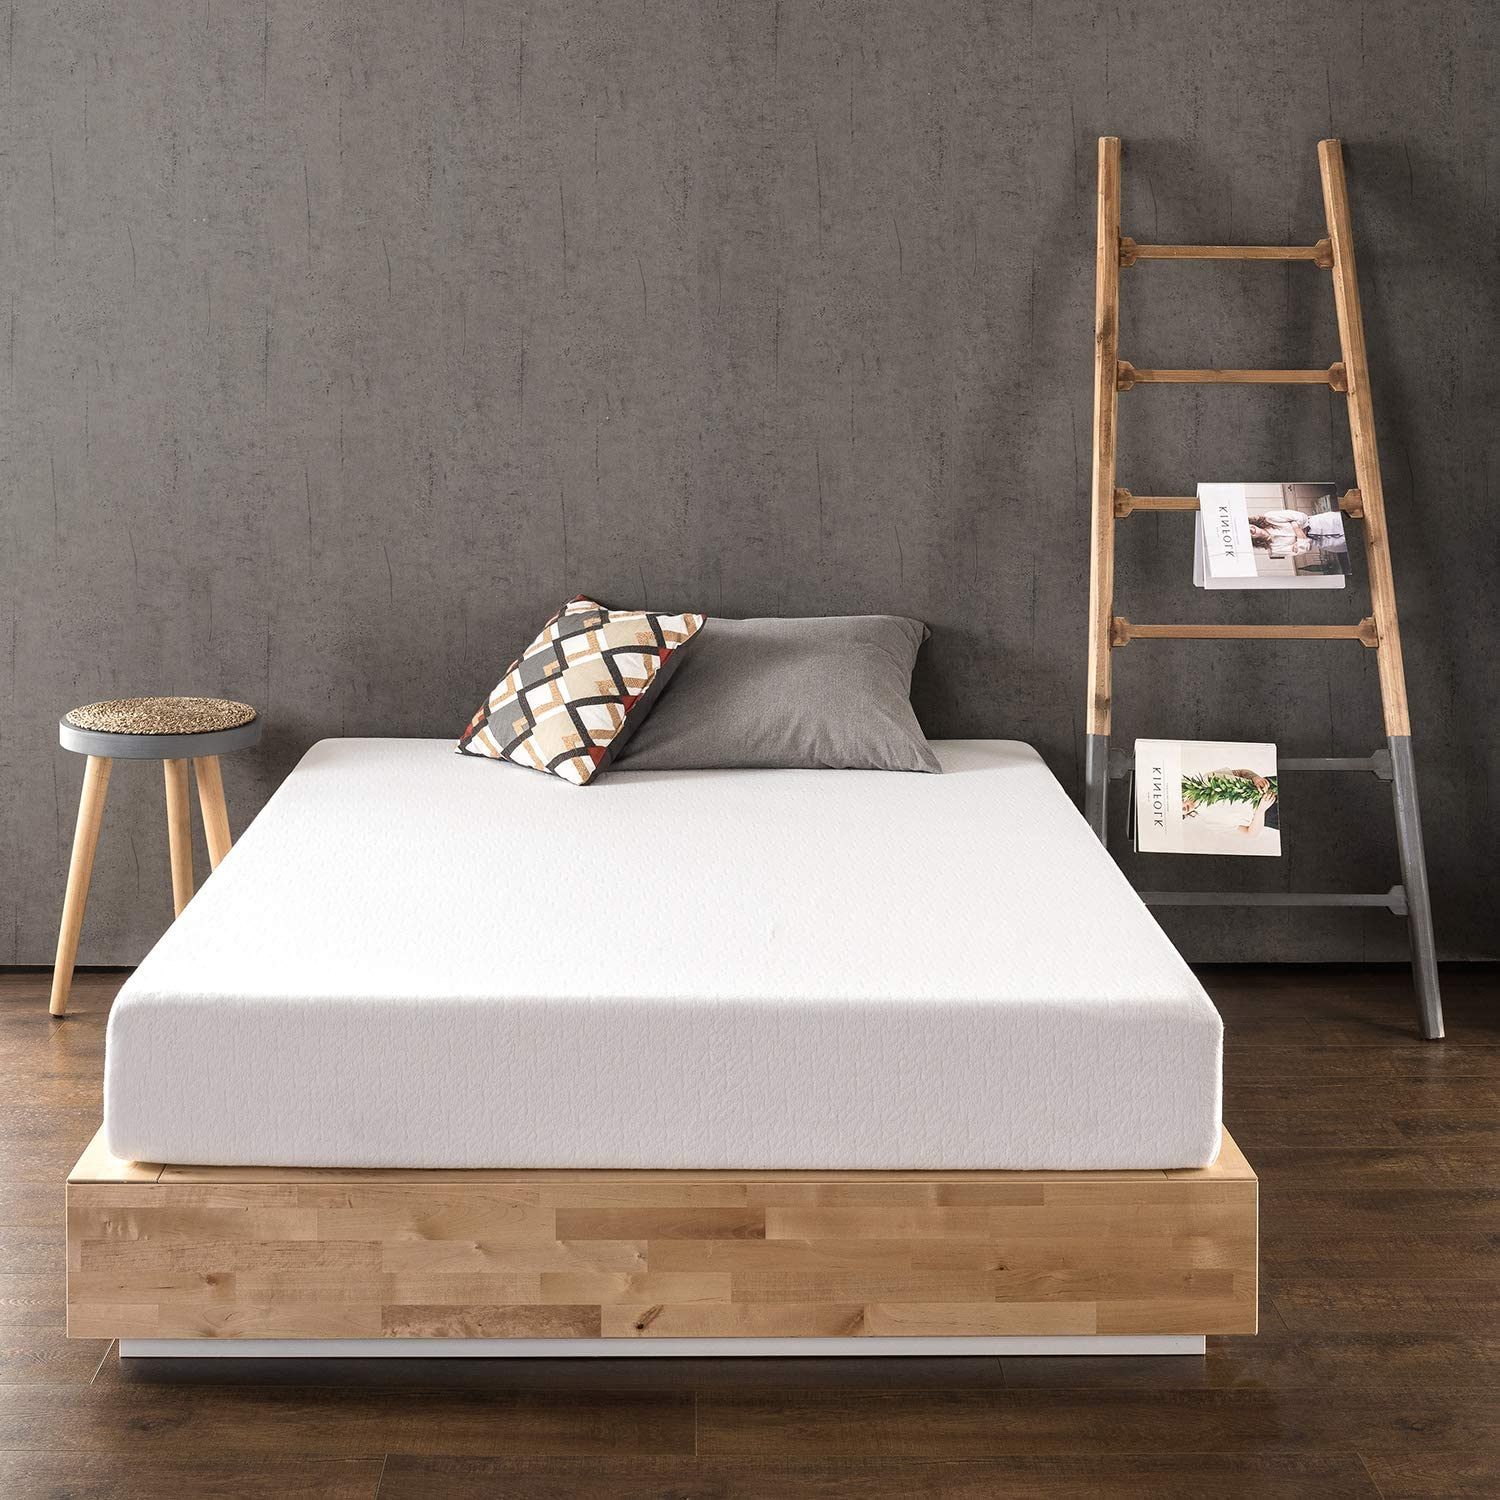 Best Mattress For Heavy People 2020 - Buyer's Guide 2